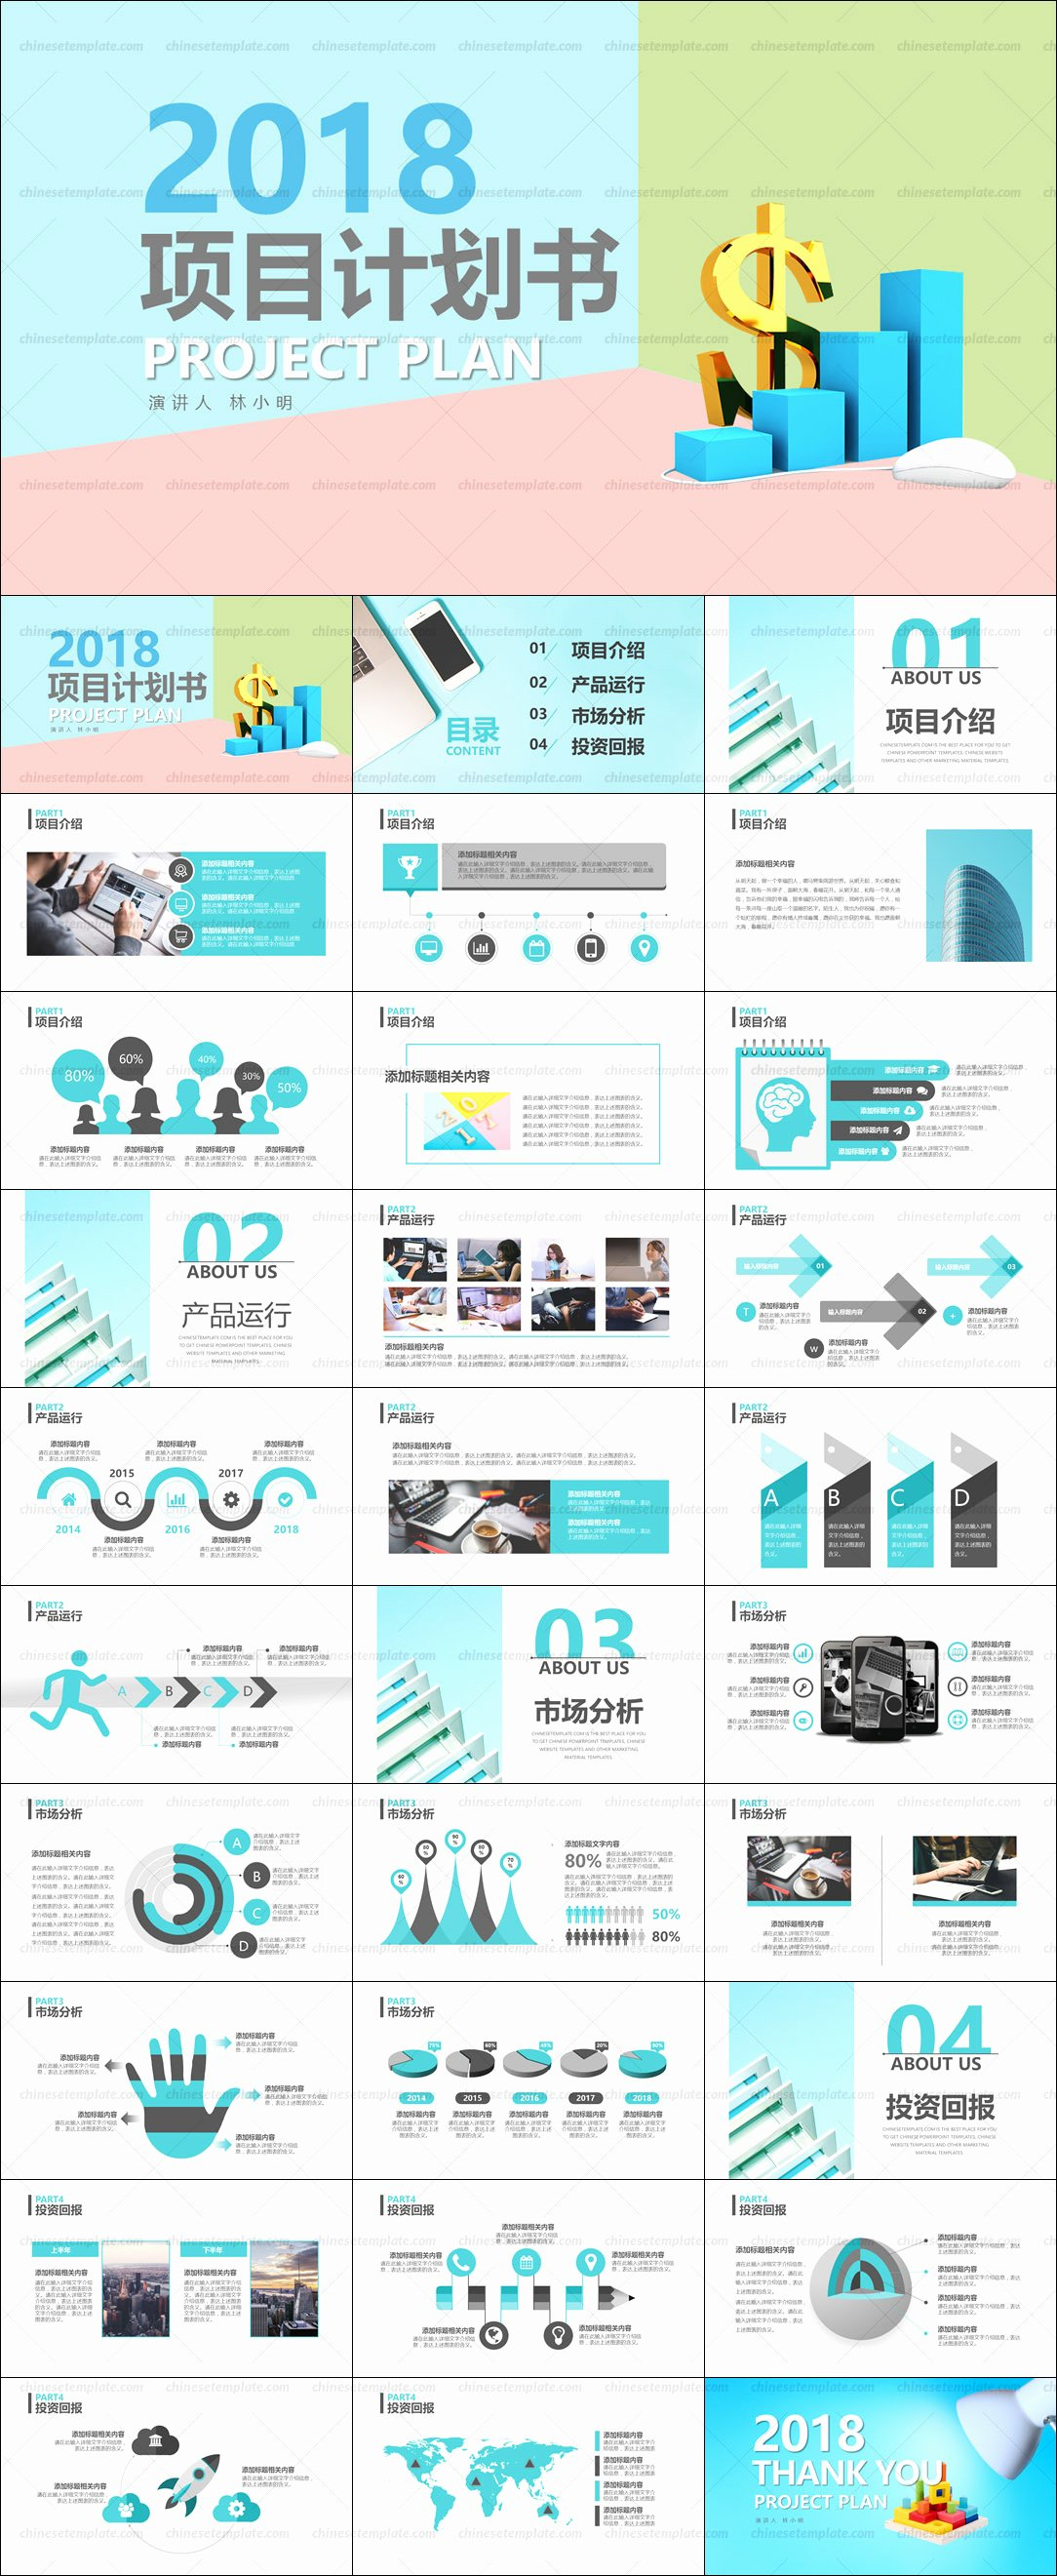 Project Plan Powerpoint Template Inspirational Chinese Project Plan Powerpoint Template – Chinese